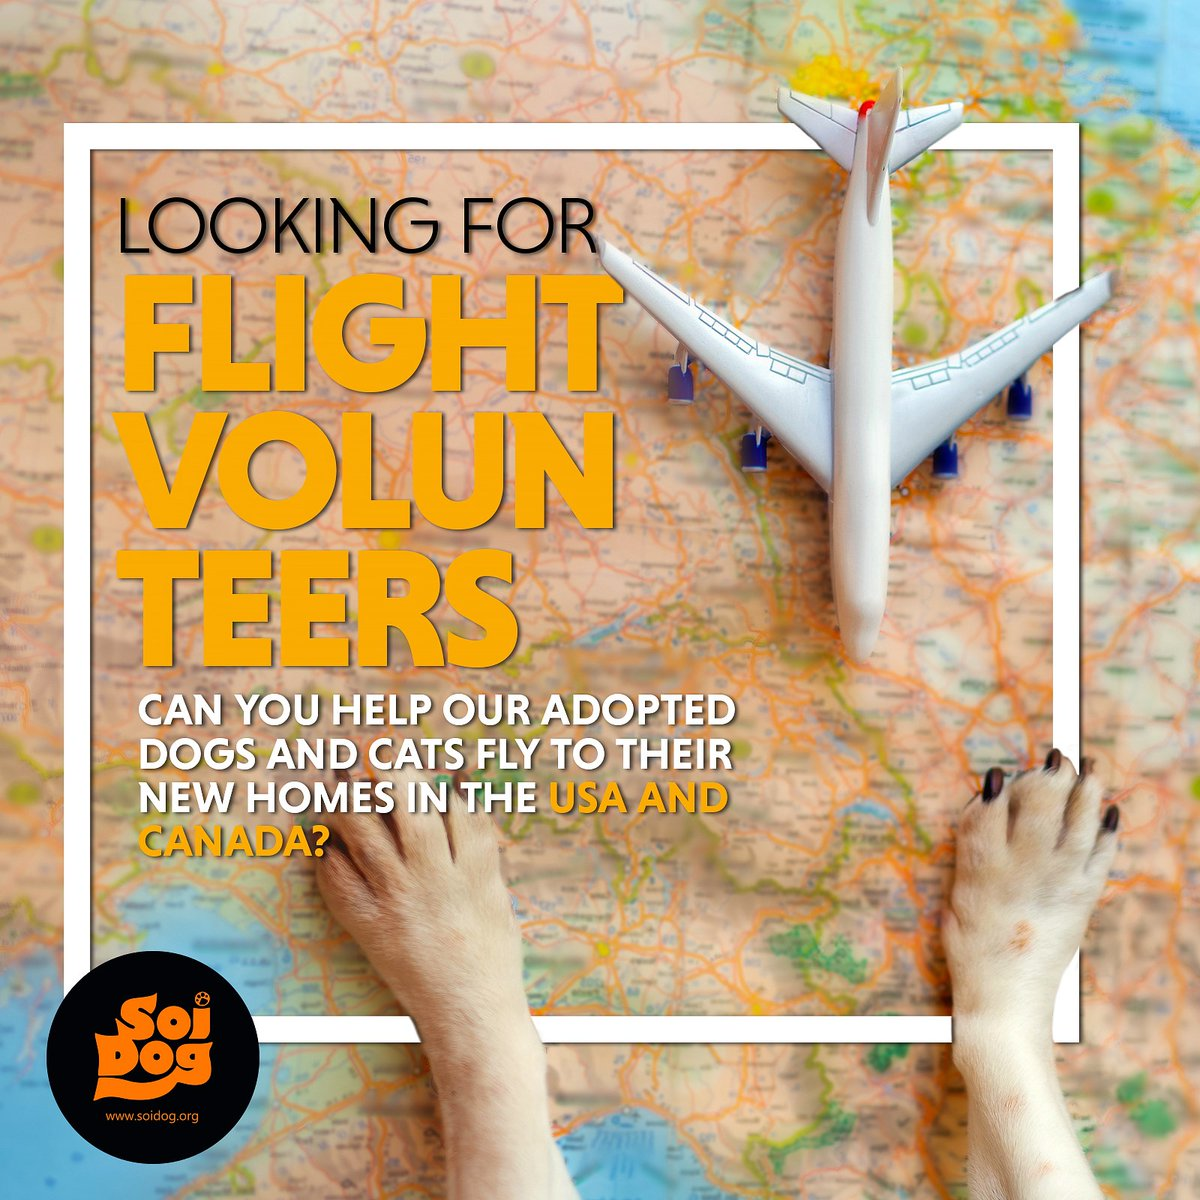 Are you planning to travel to #USA or #Canada #Europe from #Thailand ❓ Our doggies and kitties need your help getting to their #furever home. 🙏.   Being a #FlightVolunteer for Soi Dog is very rewarding & our logistics team will help you along the way.⬇  📧logistics@soidog.org https://t.co/Yro7a6q9Jr